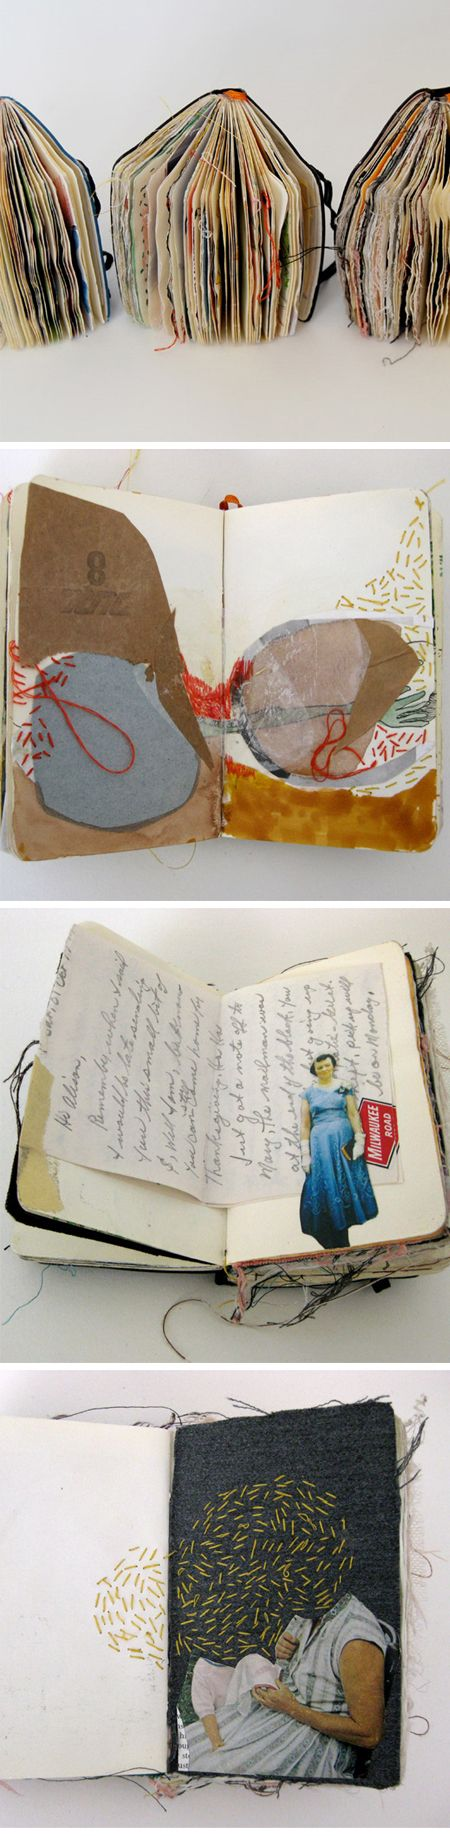 """Sketchbooks by Alison Worman displayed on """"The Jealous Curator."""" You gotta love a site that describes itself as """"a collection of artowkr that inspires, & depresses me. I know it's good when I'm left thinking Damn I Wish I Thought of That.""""  Oh I can SO relate!"""